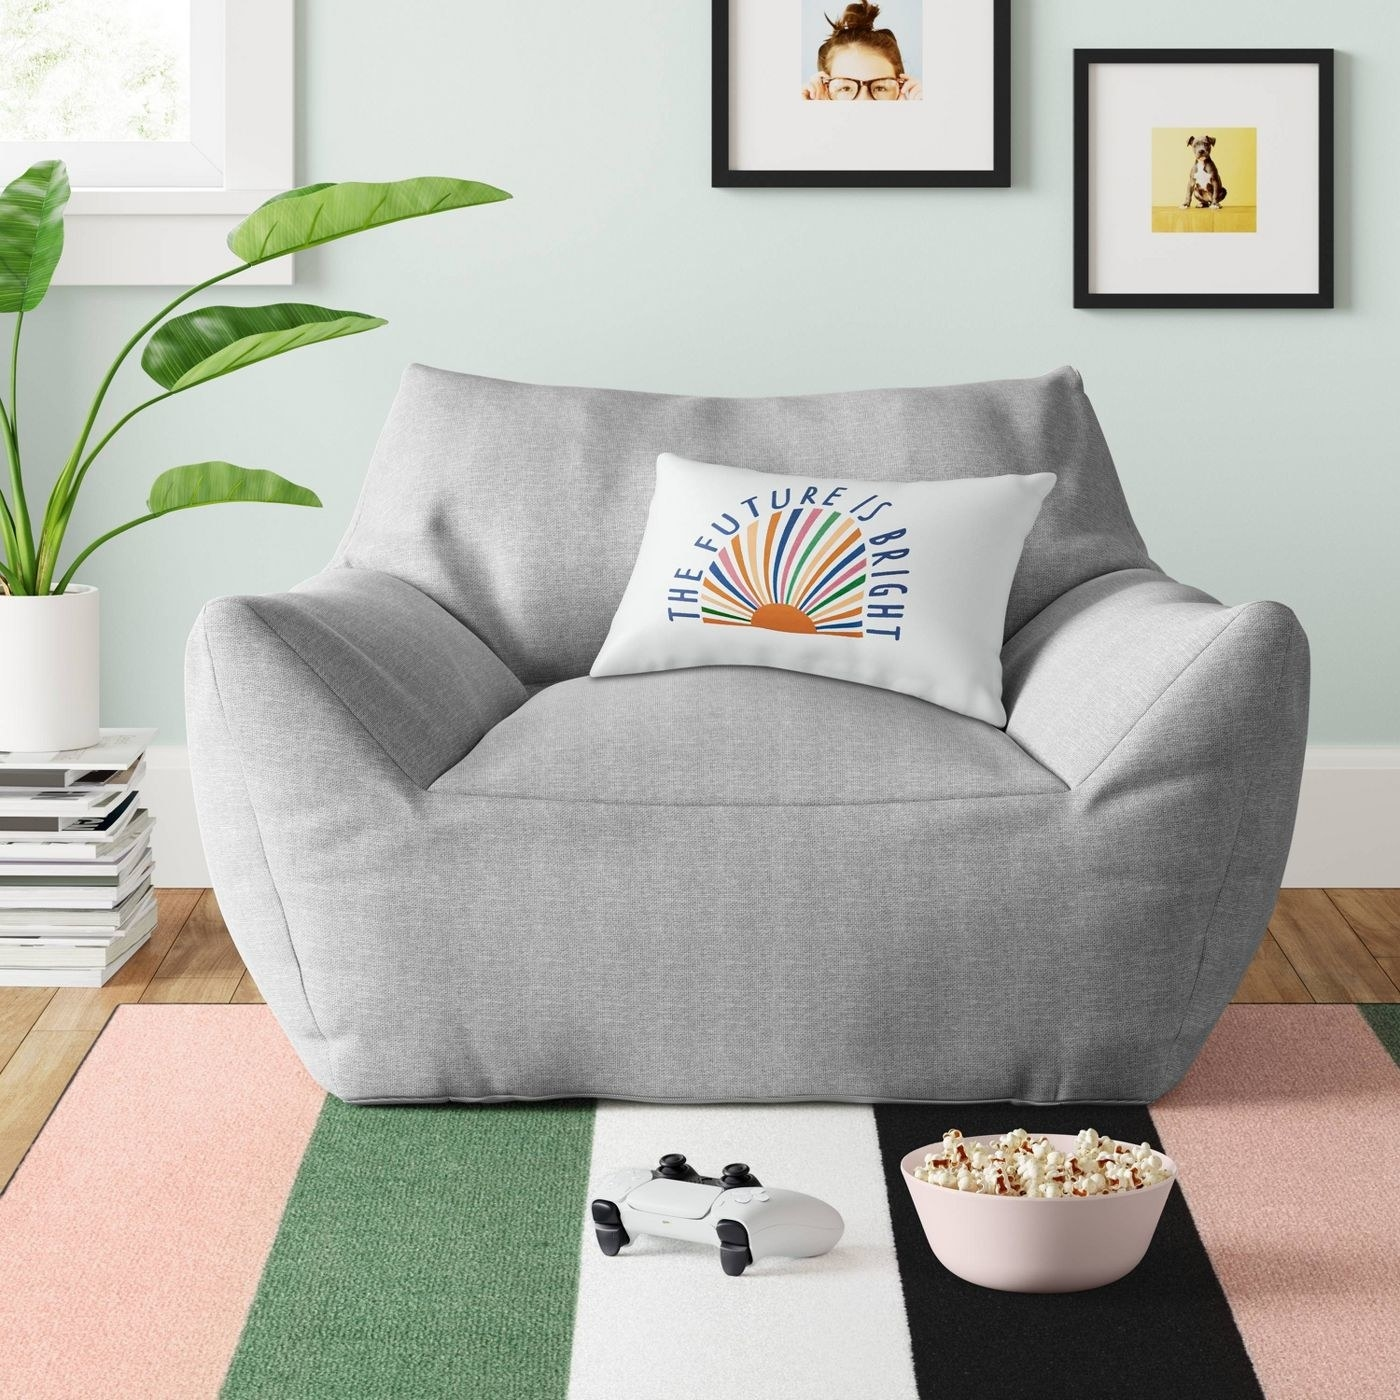 a grey bean bag chair with arms and a back